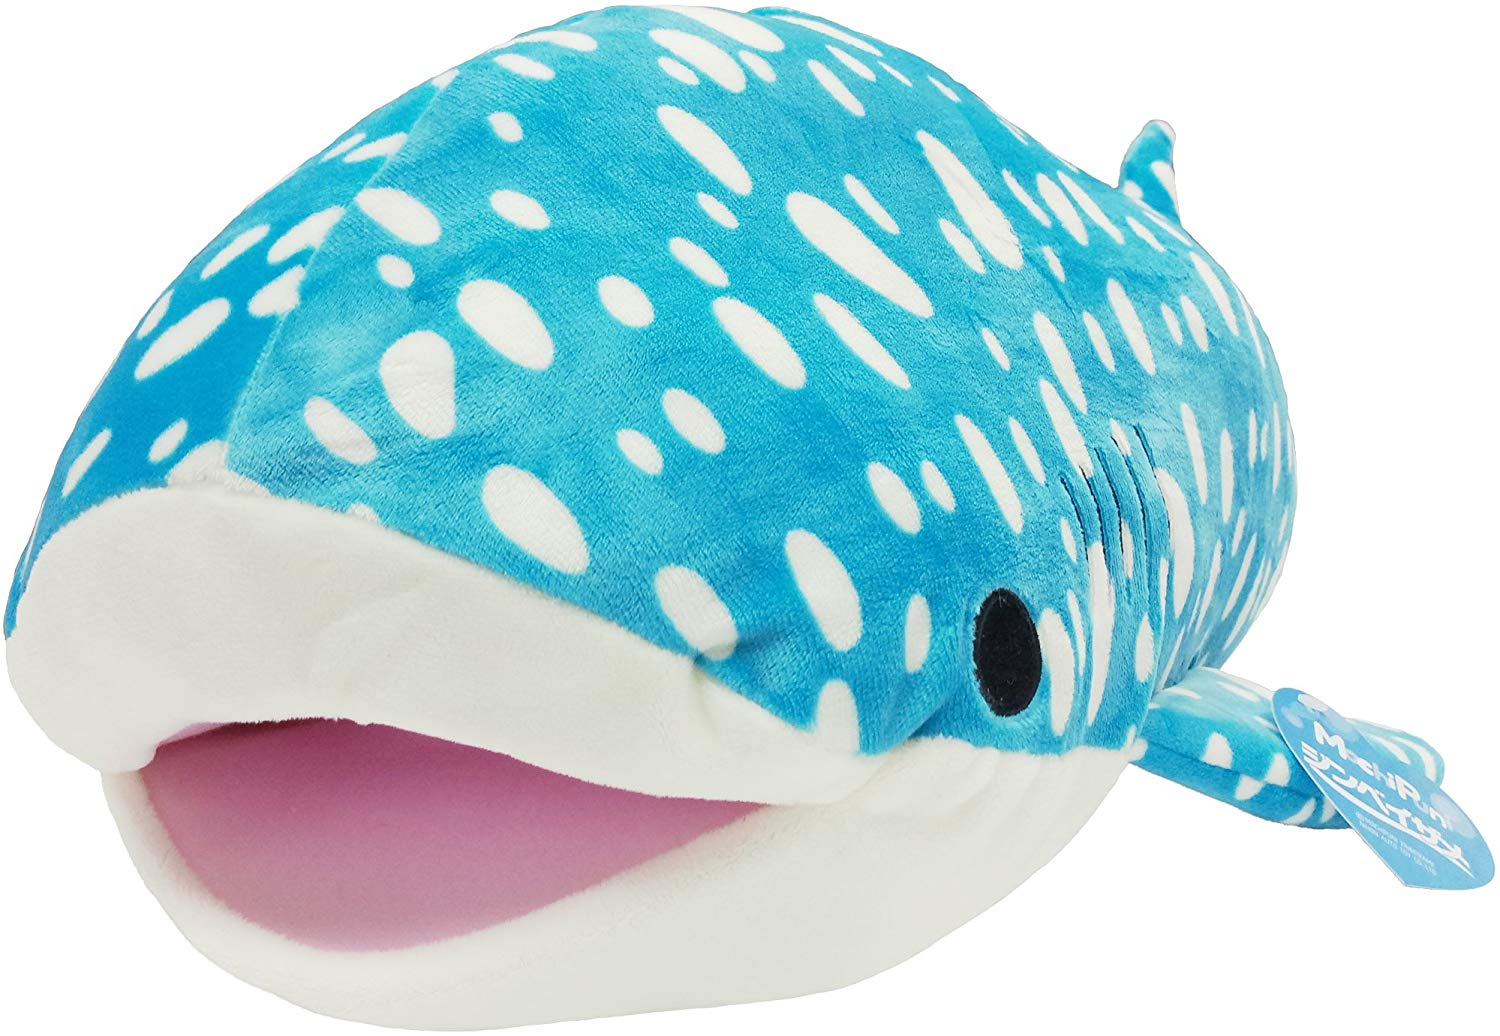 Cheap Whale Shark Plush Toy Find Whale Shark Plush Toy Deals On